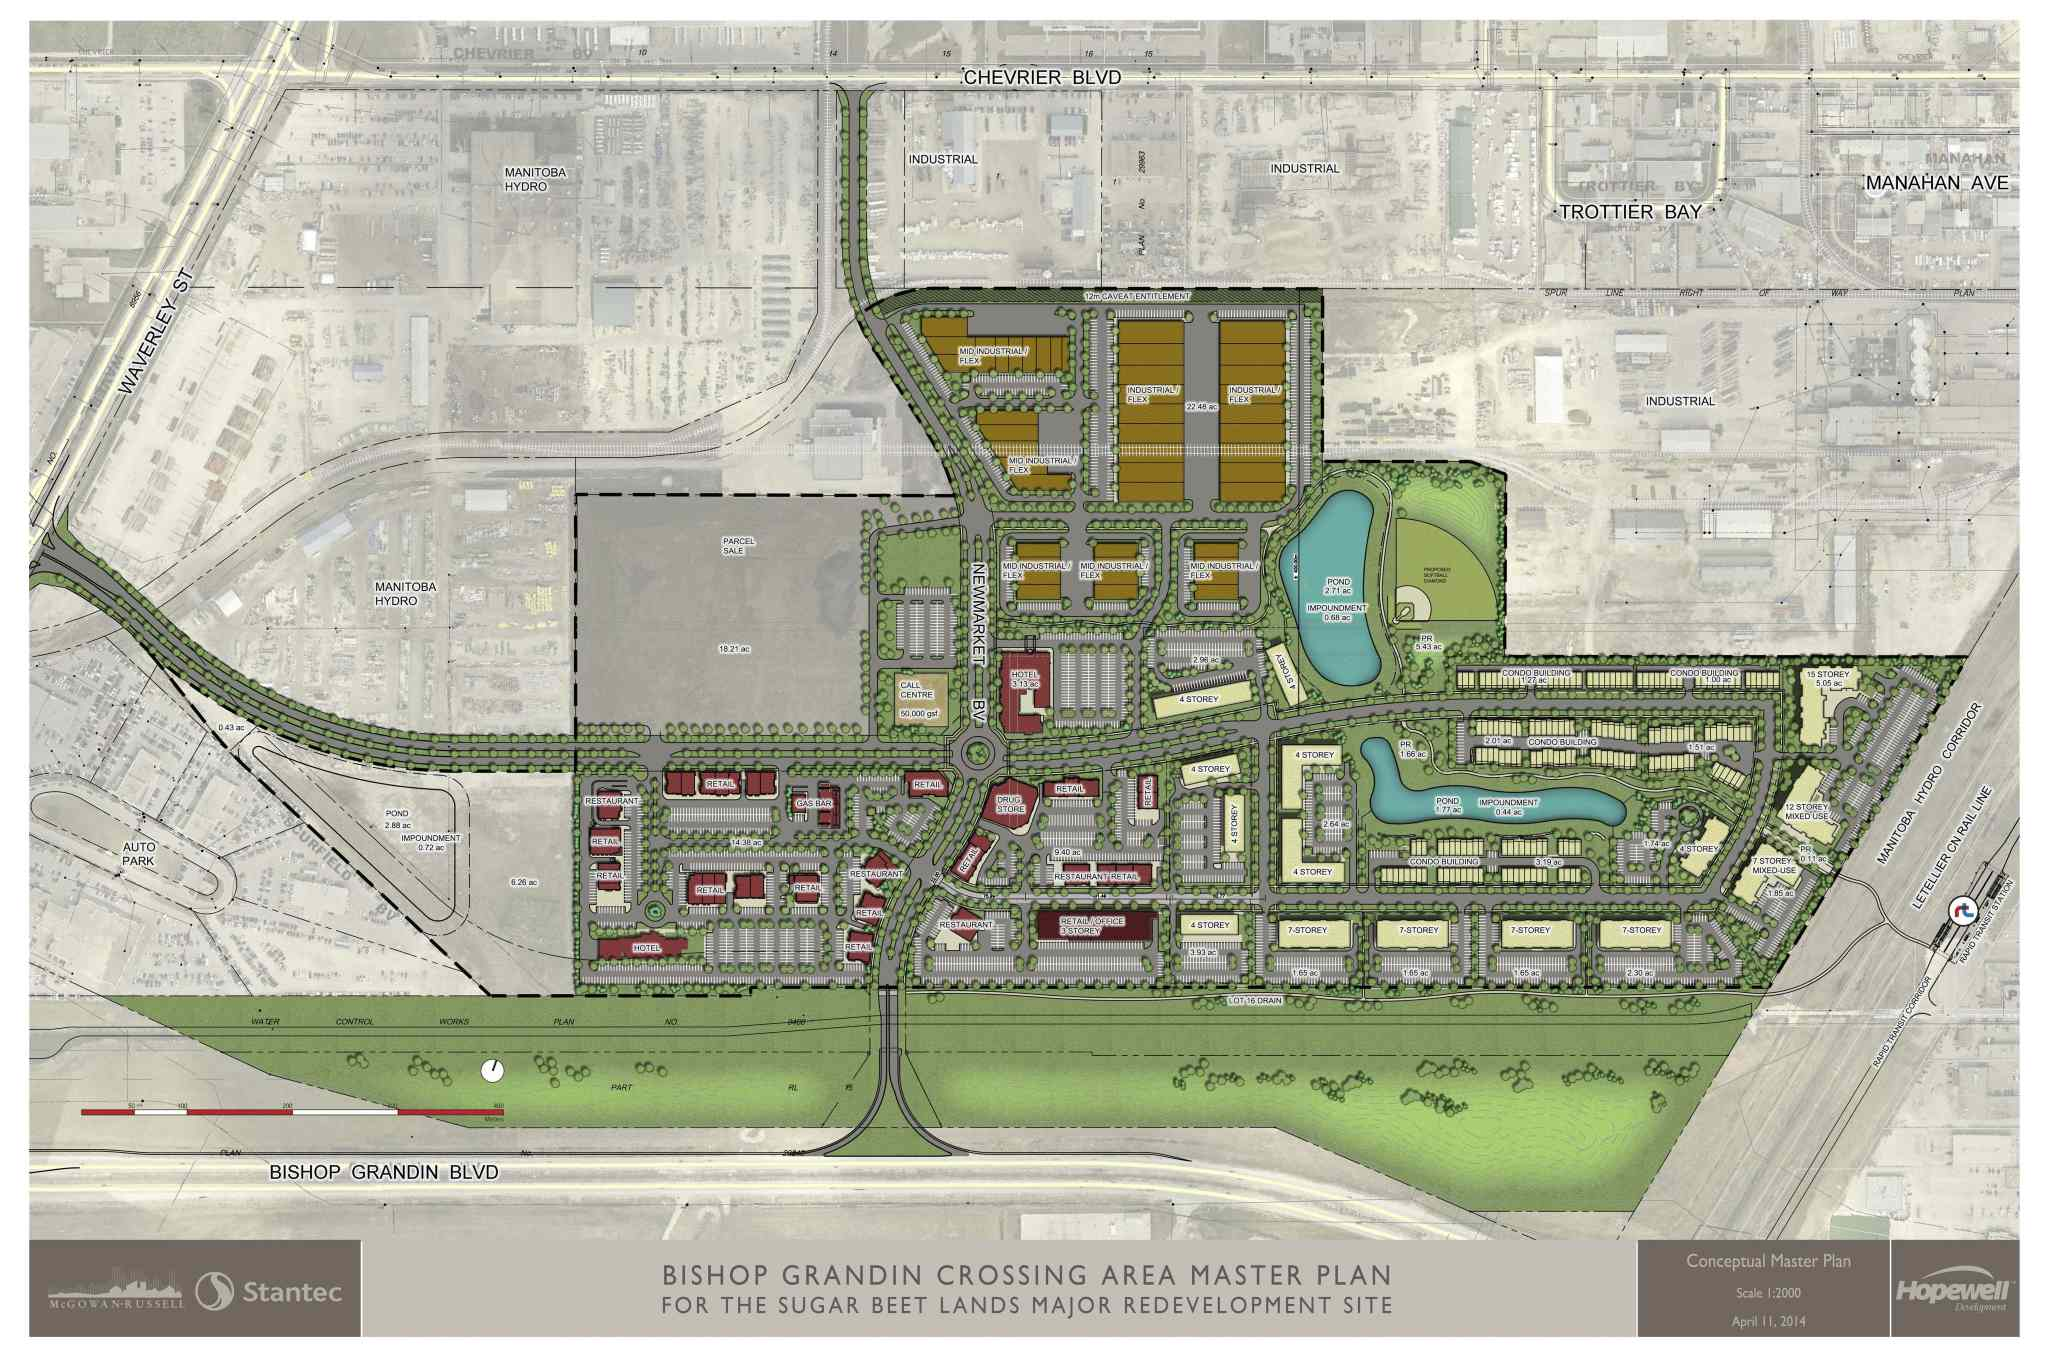 The 53-hectare Bishop Grandin Crossing is expected to include at least 1,400 multi-family units in addition to retail and industrial development.